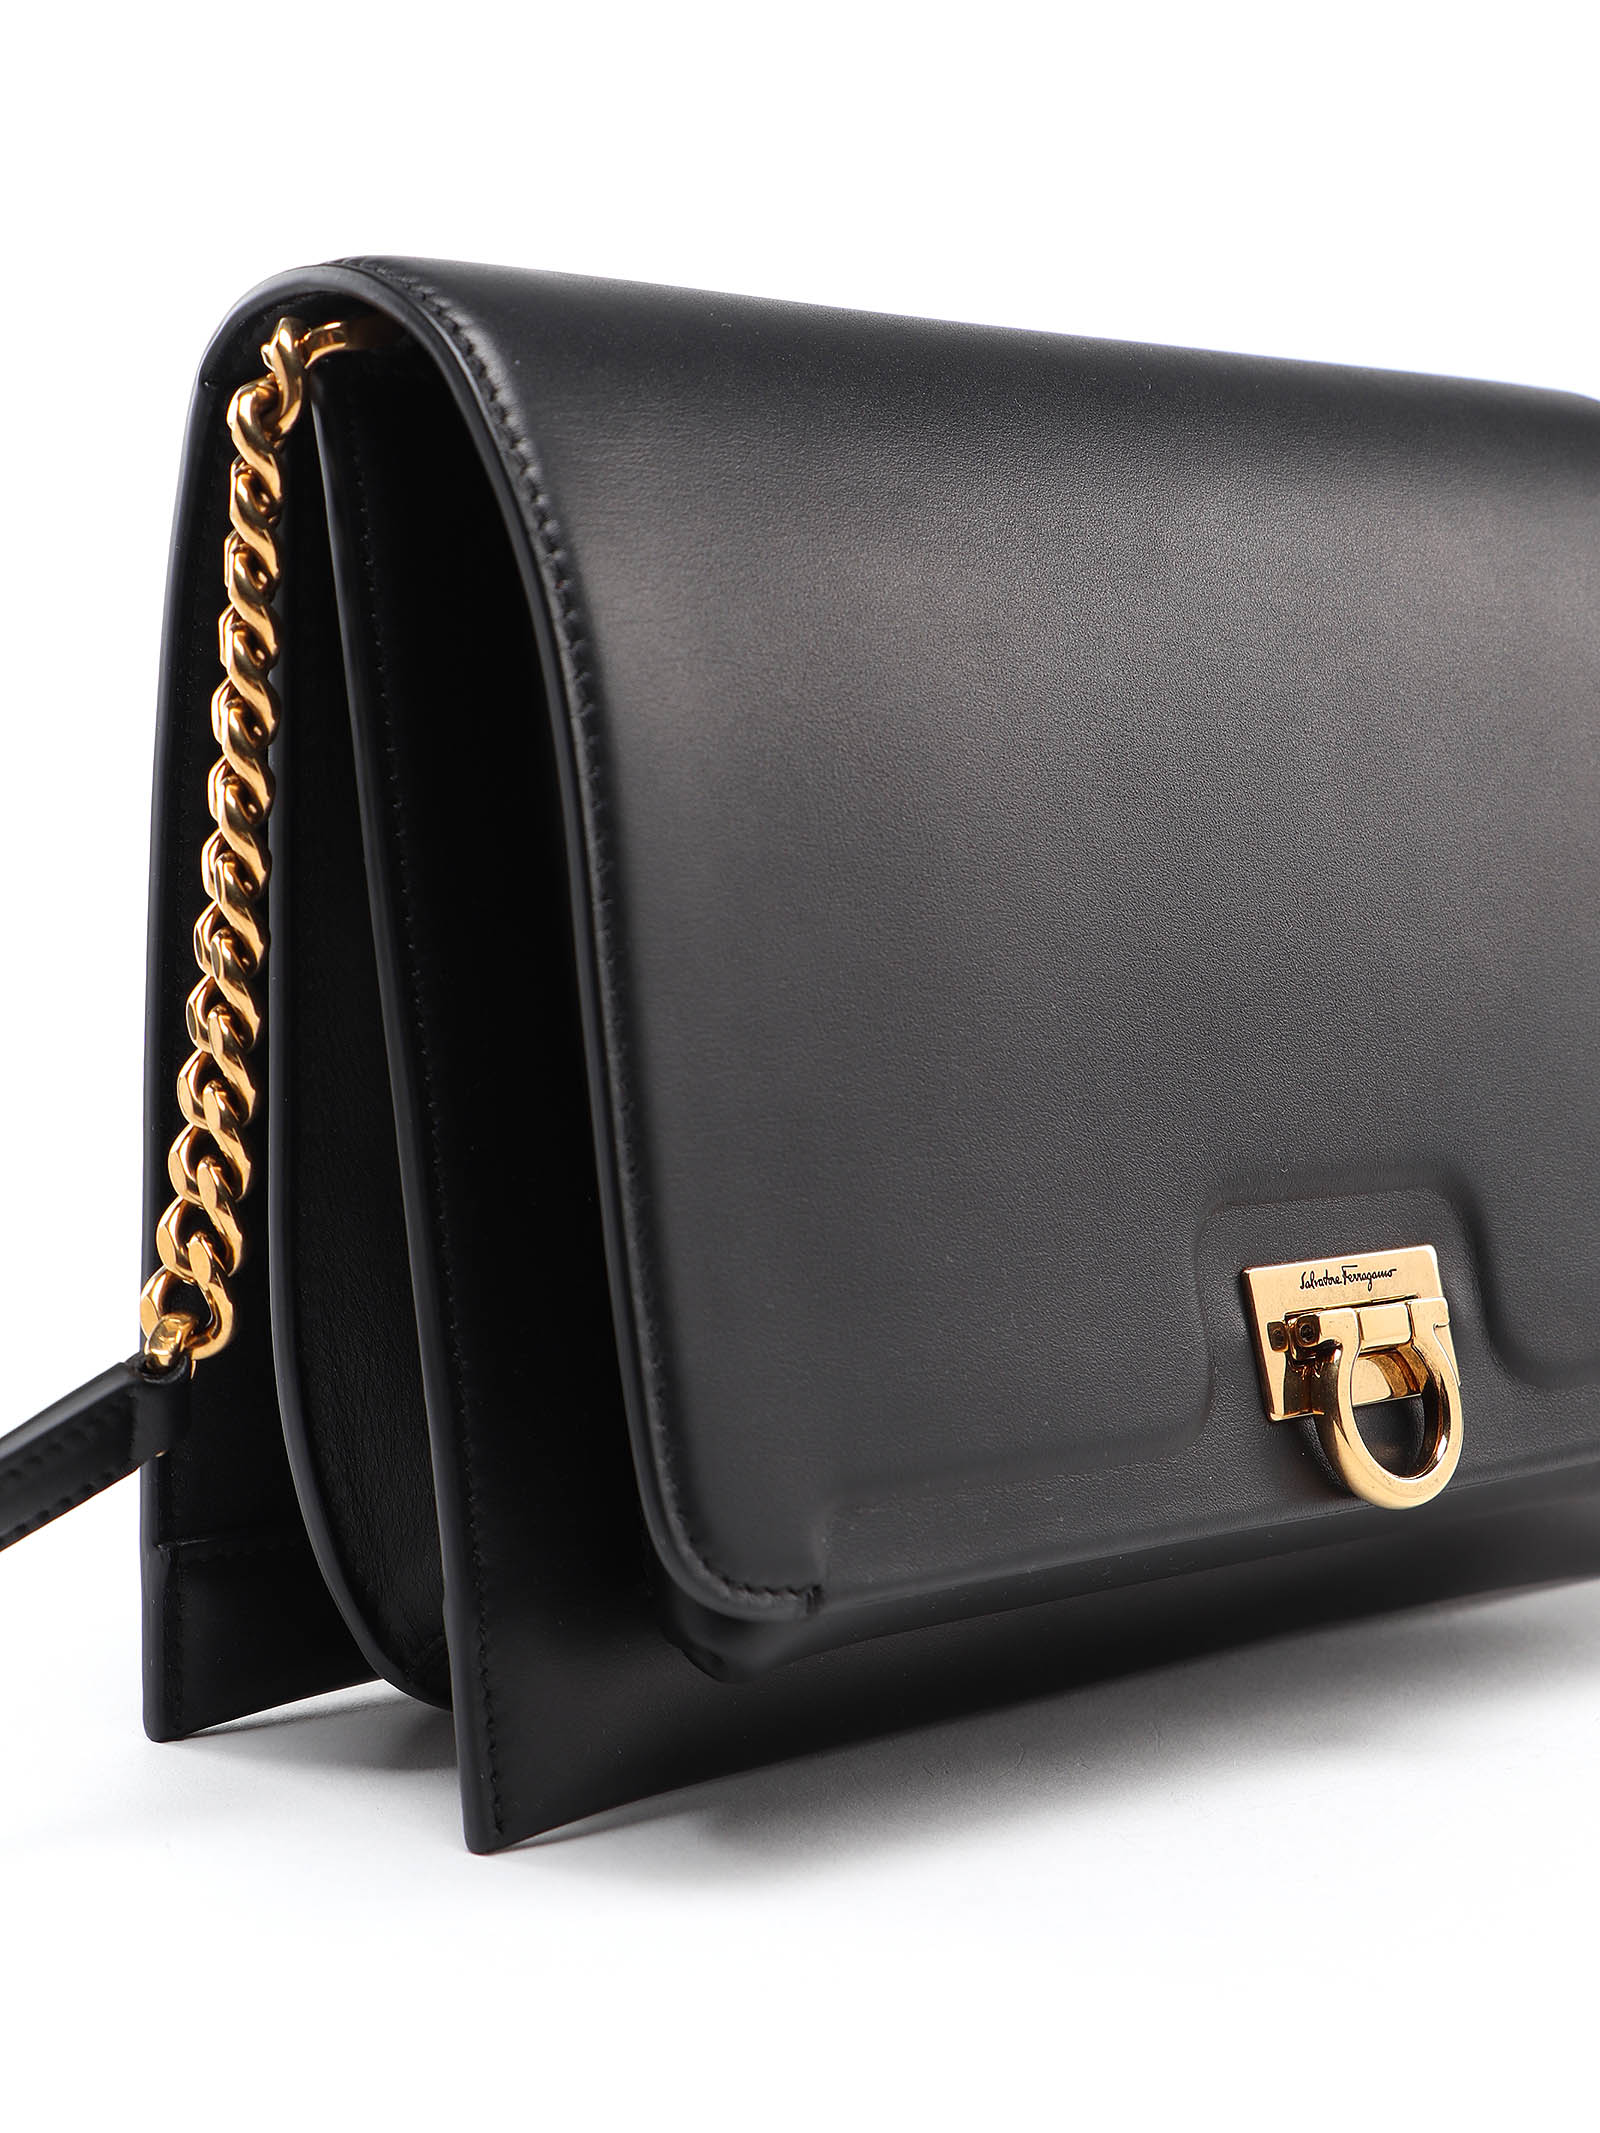 Picture of Salvatore Ferragamo | Gancio Square Md Bag